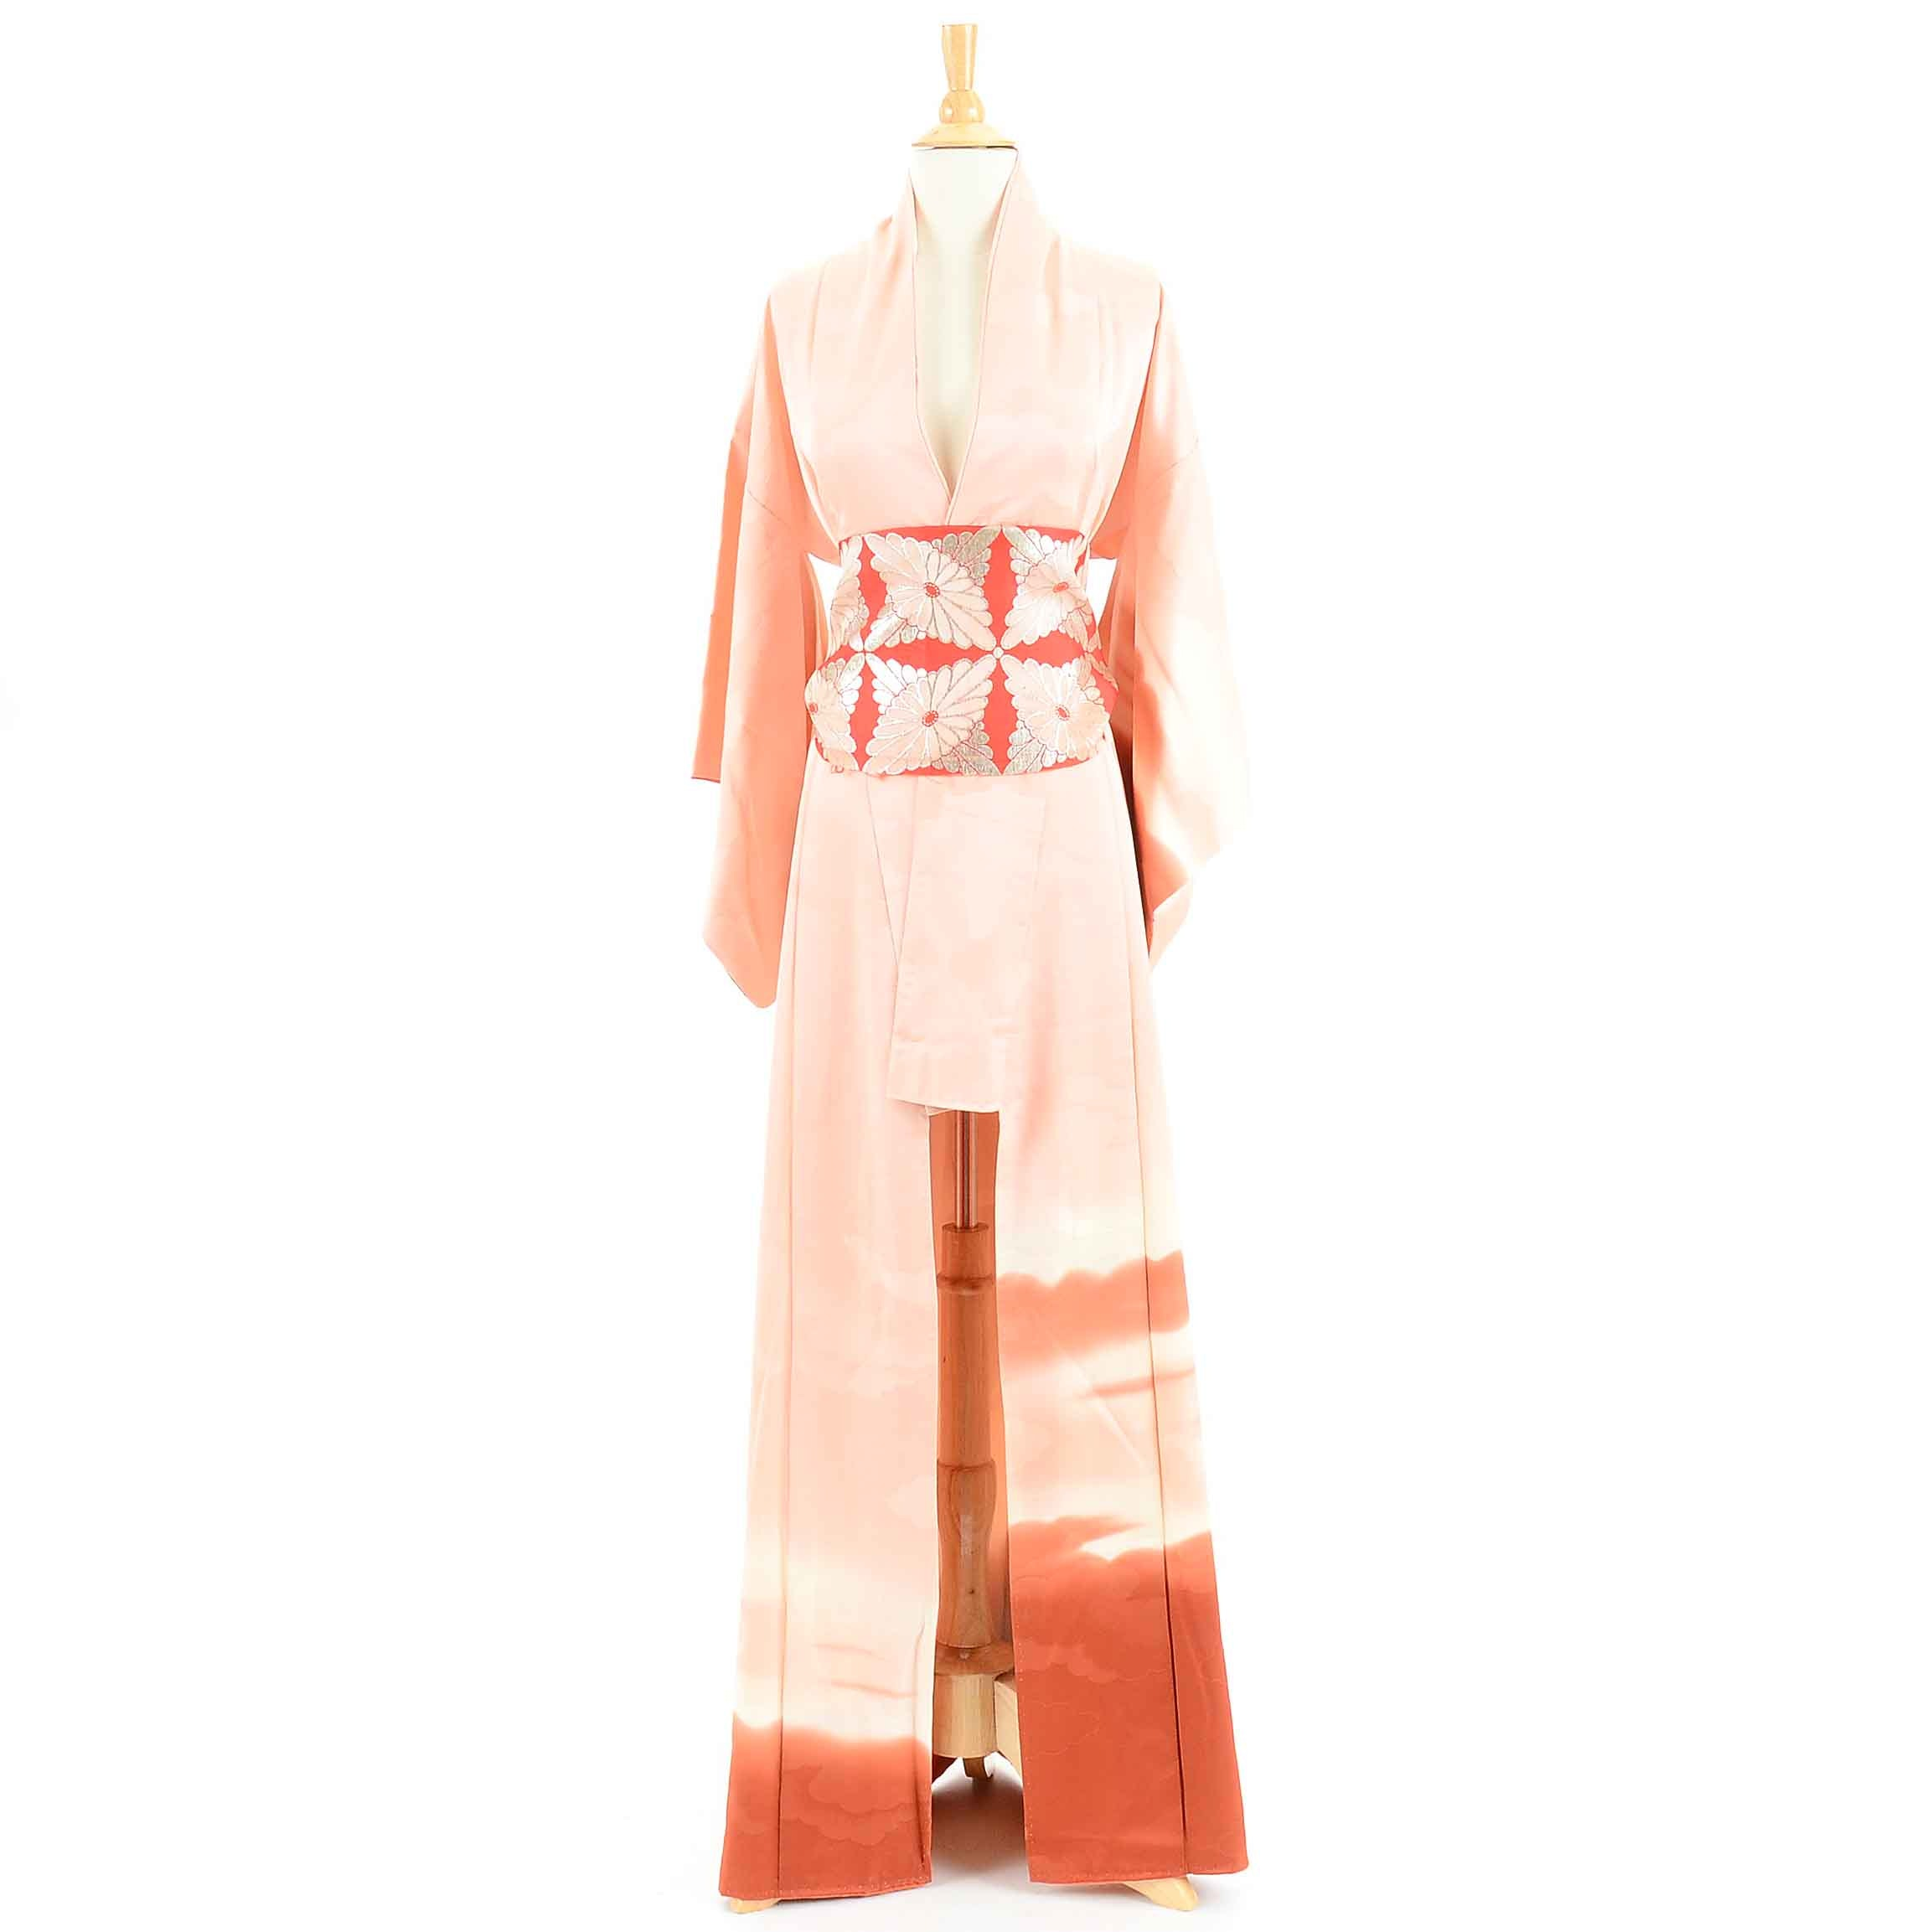 Vintage Japanese Peach Silk Kimono and Obi Fabric